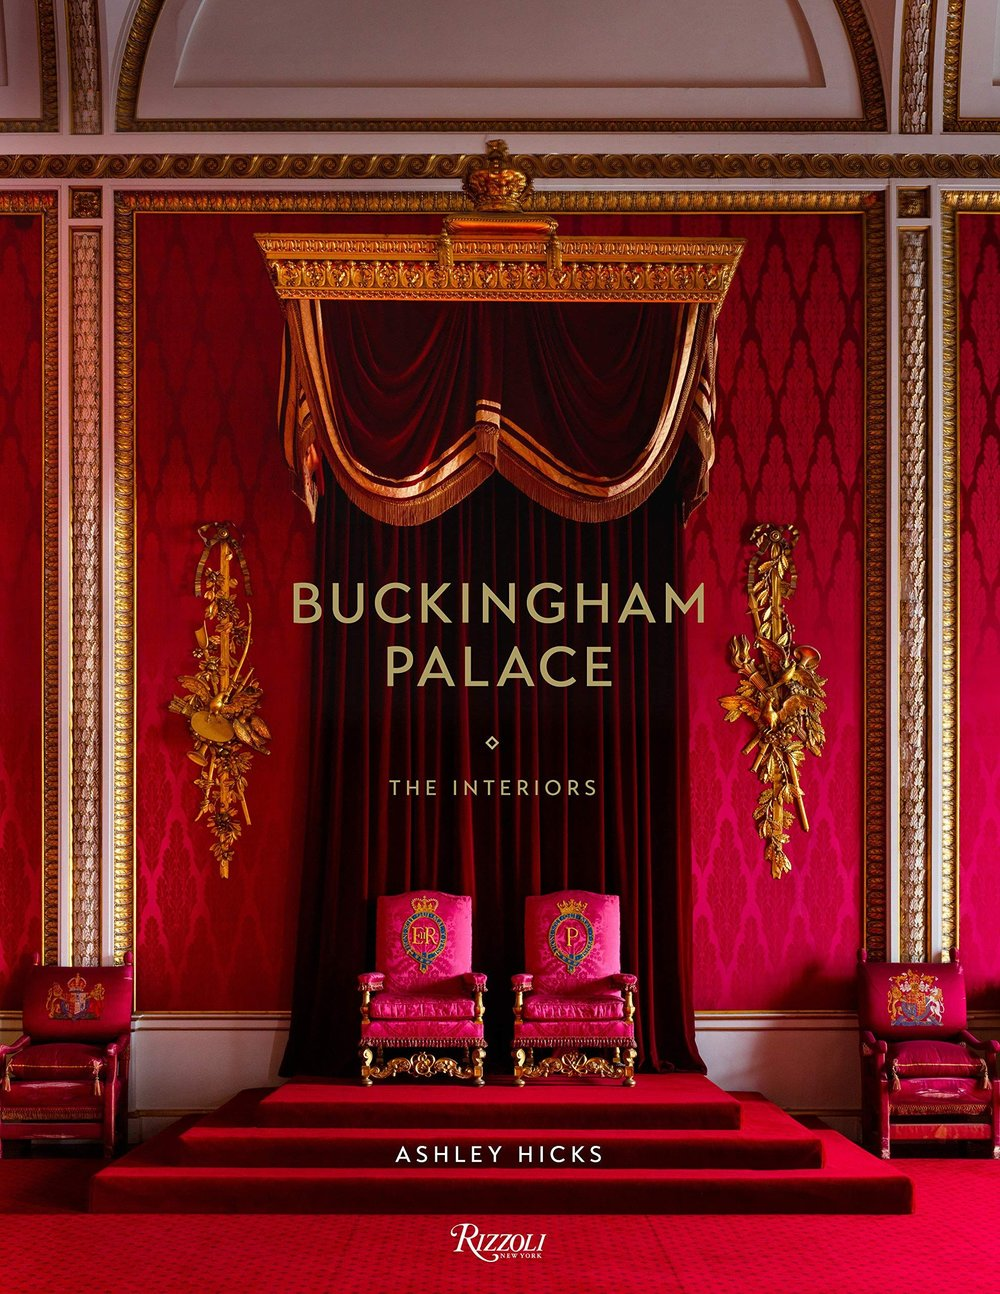 Buckingham Palace: The Interiors by Ashley Hicks coffee table book ideas